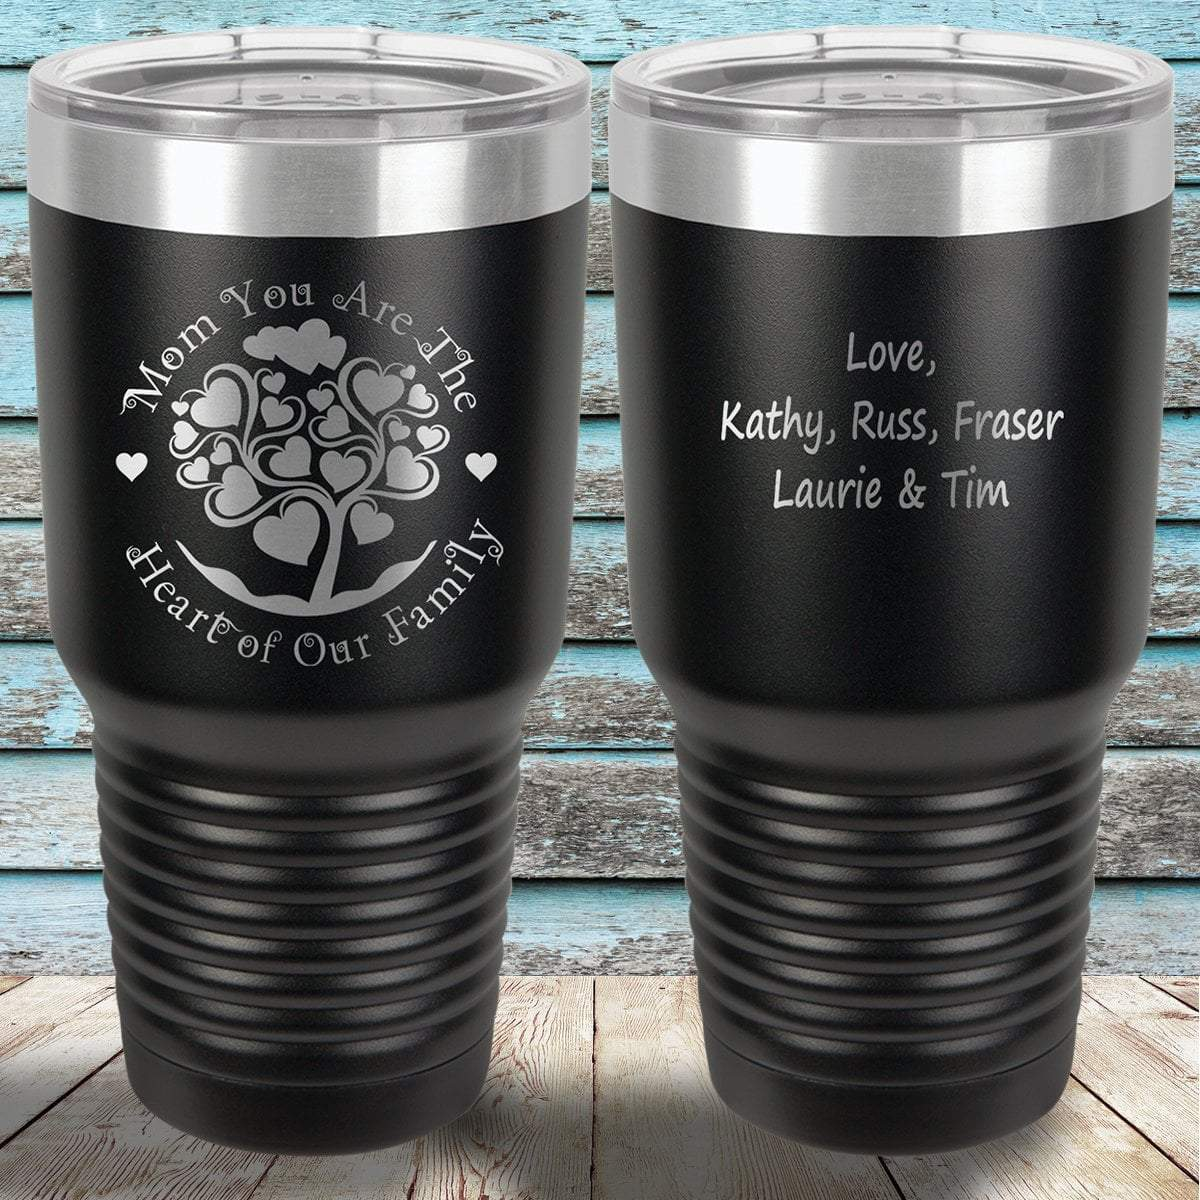 b5a7ecf4926 MacAttackGear Drinkware Black Mom You are the Heart of Our Family | Engraved  Tumbler